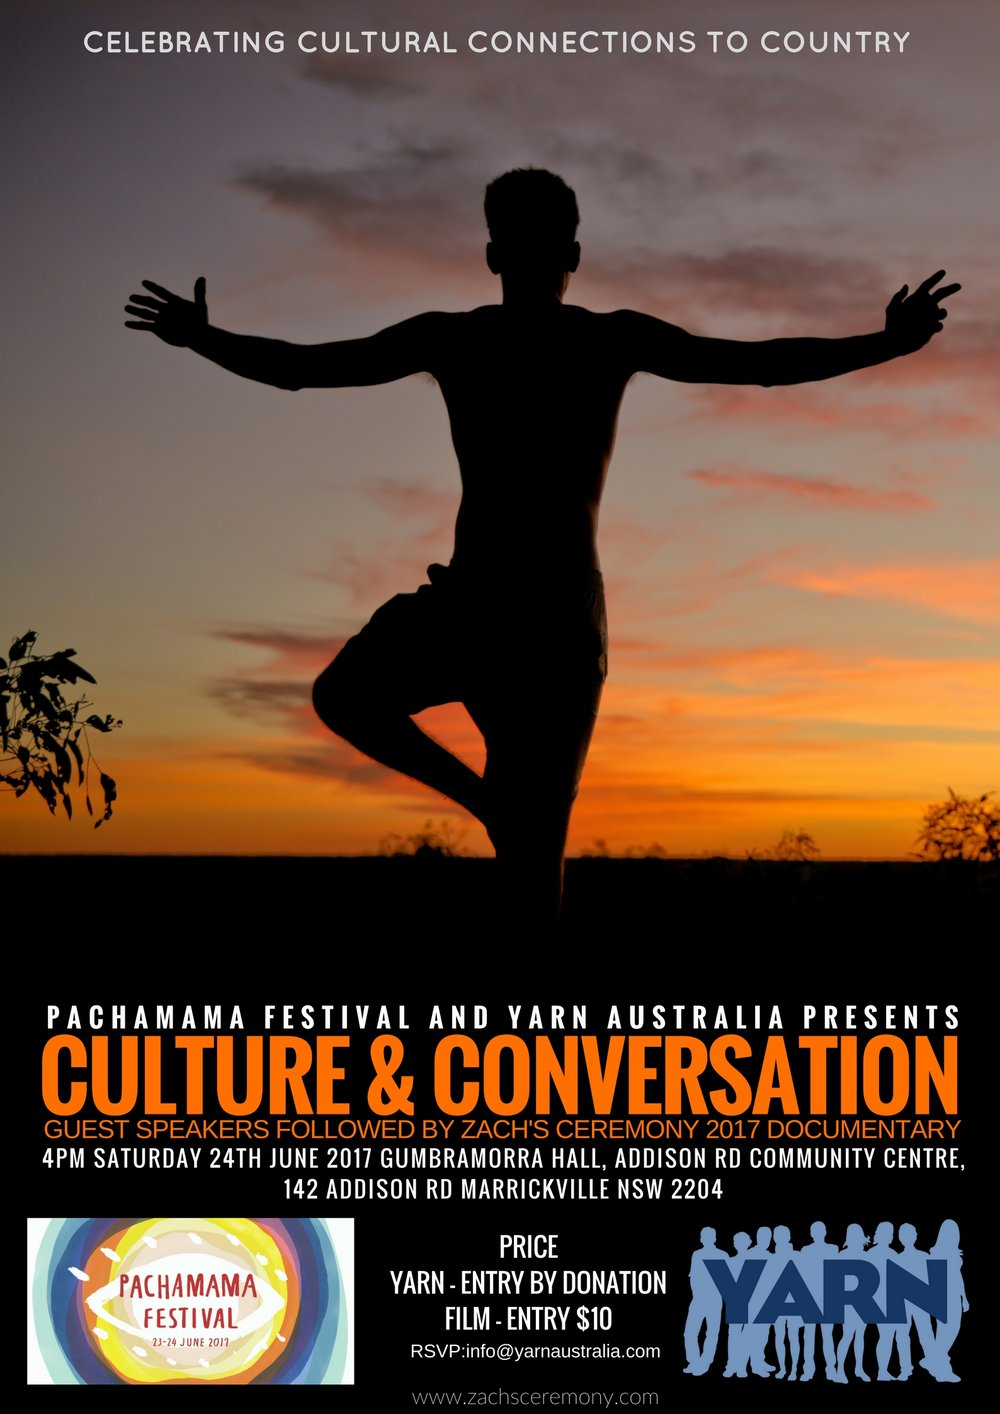 2017 JUNE 24TH YARN Australia Partners with Pachamama Festival to host Culture & Conversation and Yarning Circle